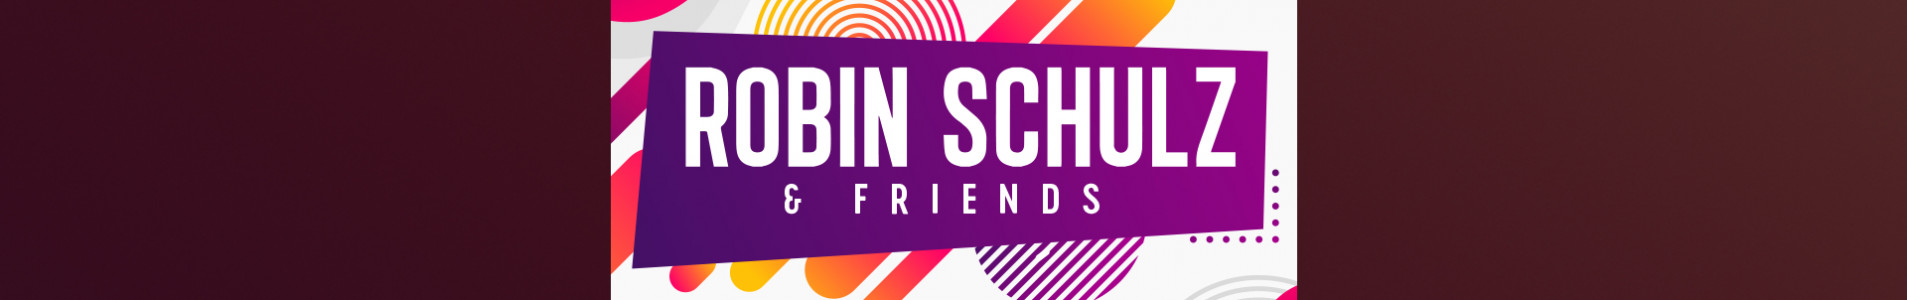 Robin Schulz & Friends also presents its Miami line-up